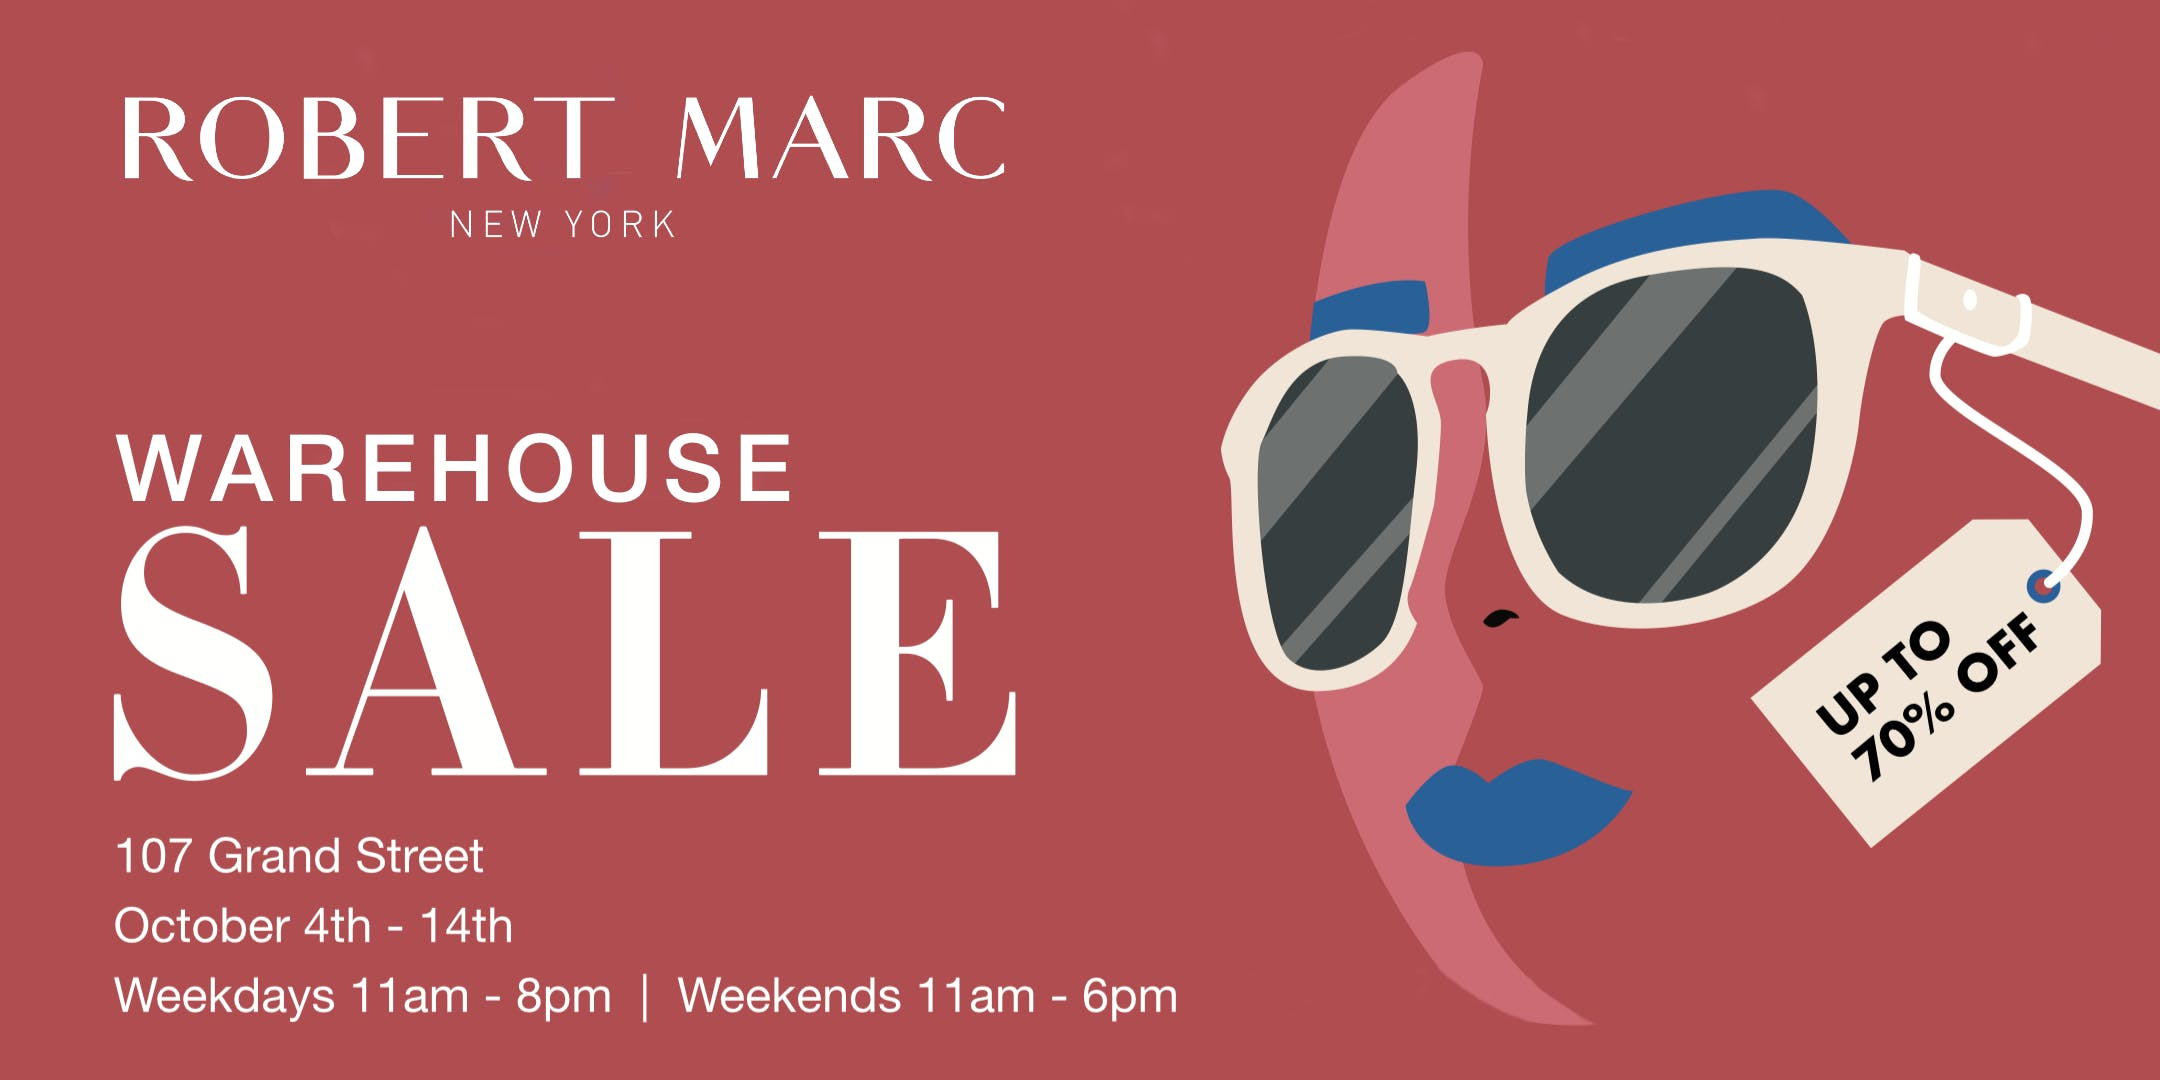 53df4b95208 Robert Marc Warehouse Sale - 4 OCT 2018